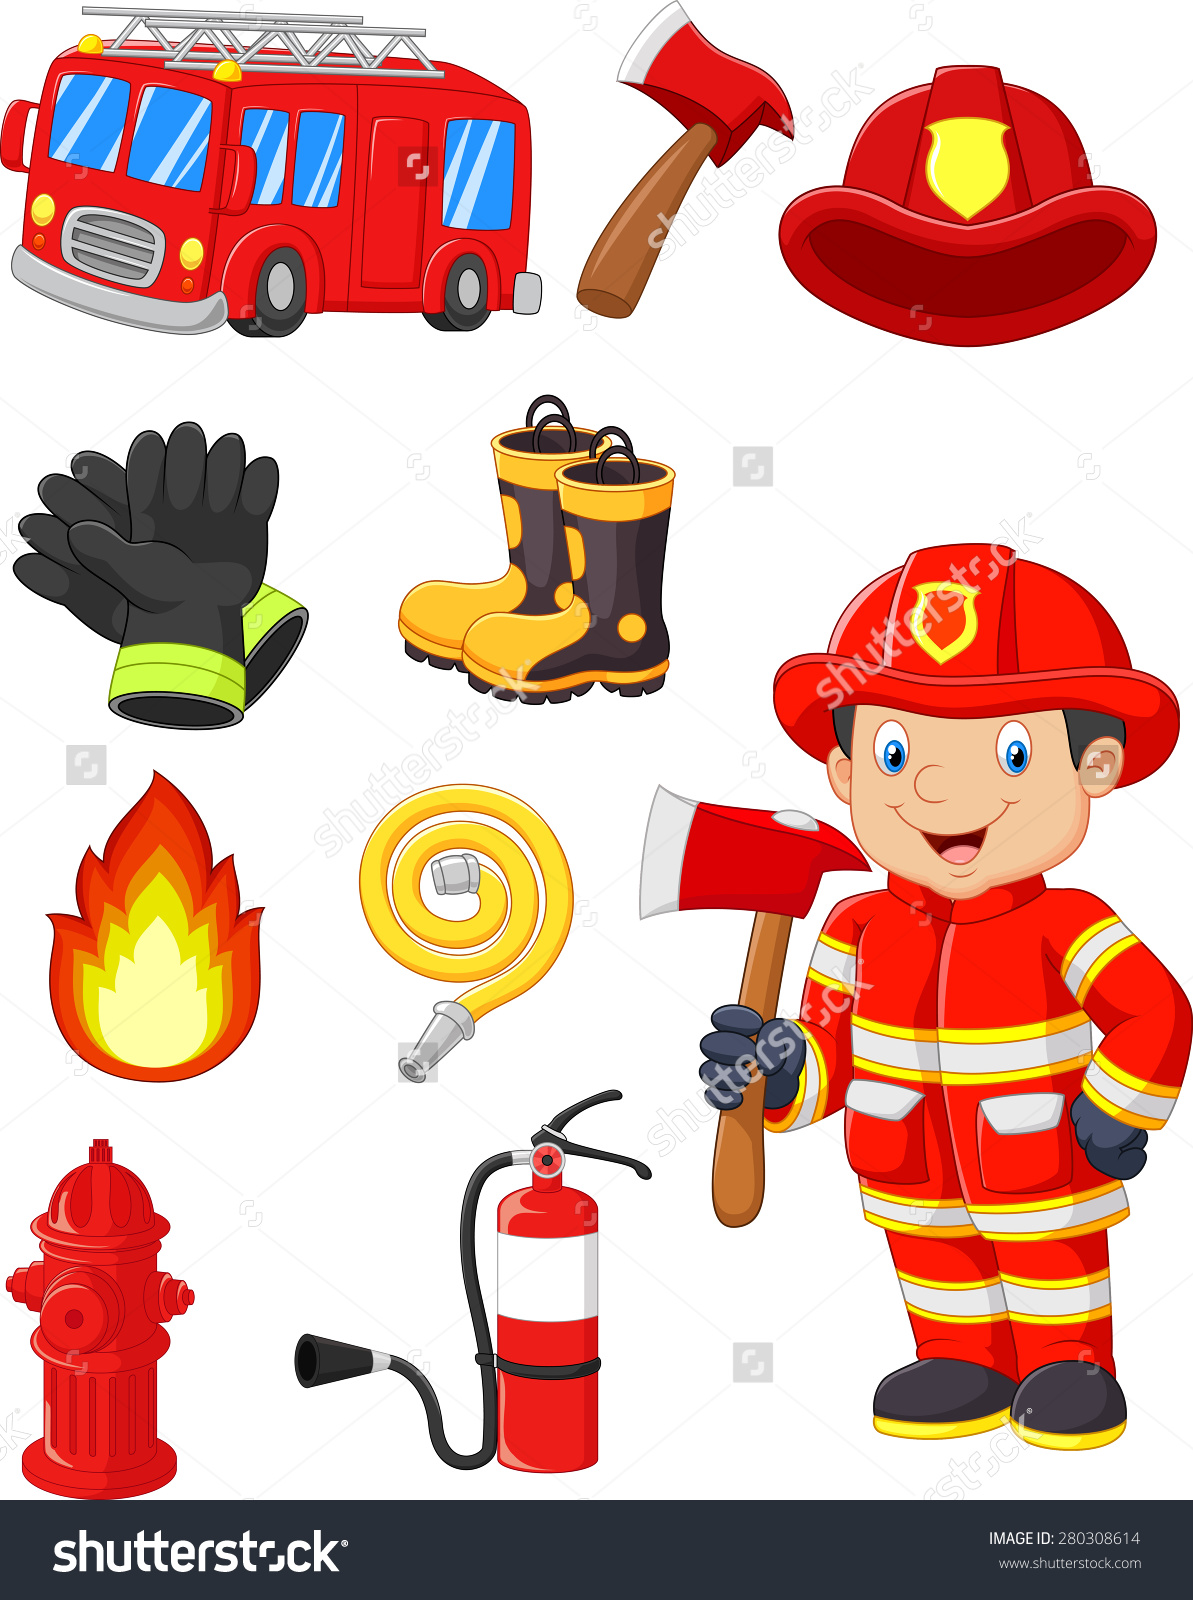 Fire equipment free collection. Axe clipart firefighter